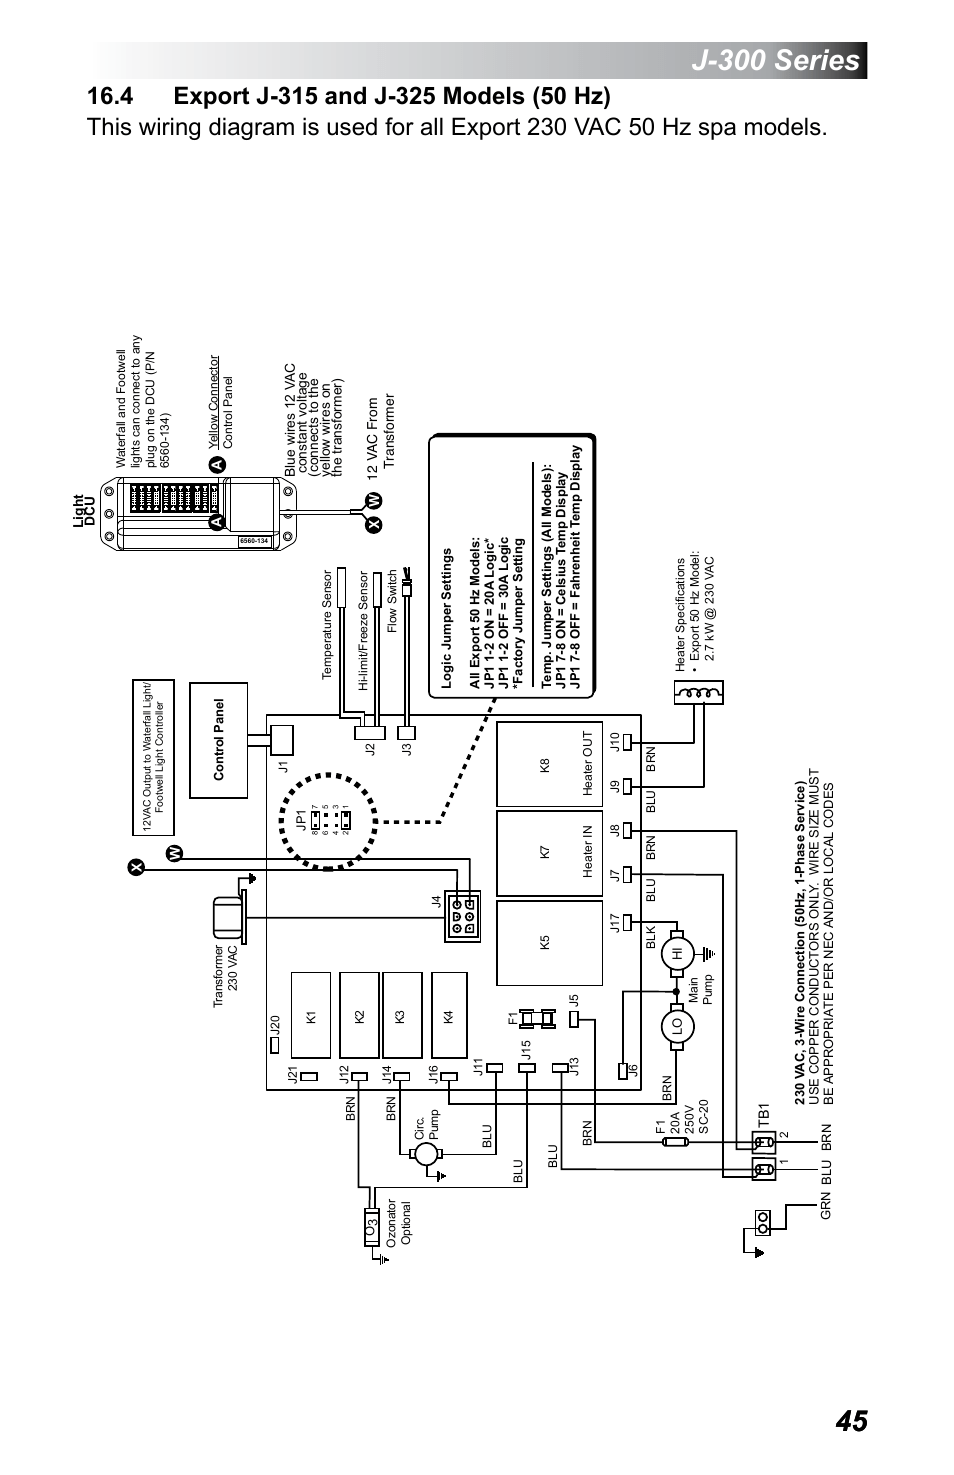 jacuzzi j 365 wiring diagram allis chalmers b 4 export 315 and 325 models 50 hz 300 series 355 user manual page 49 68